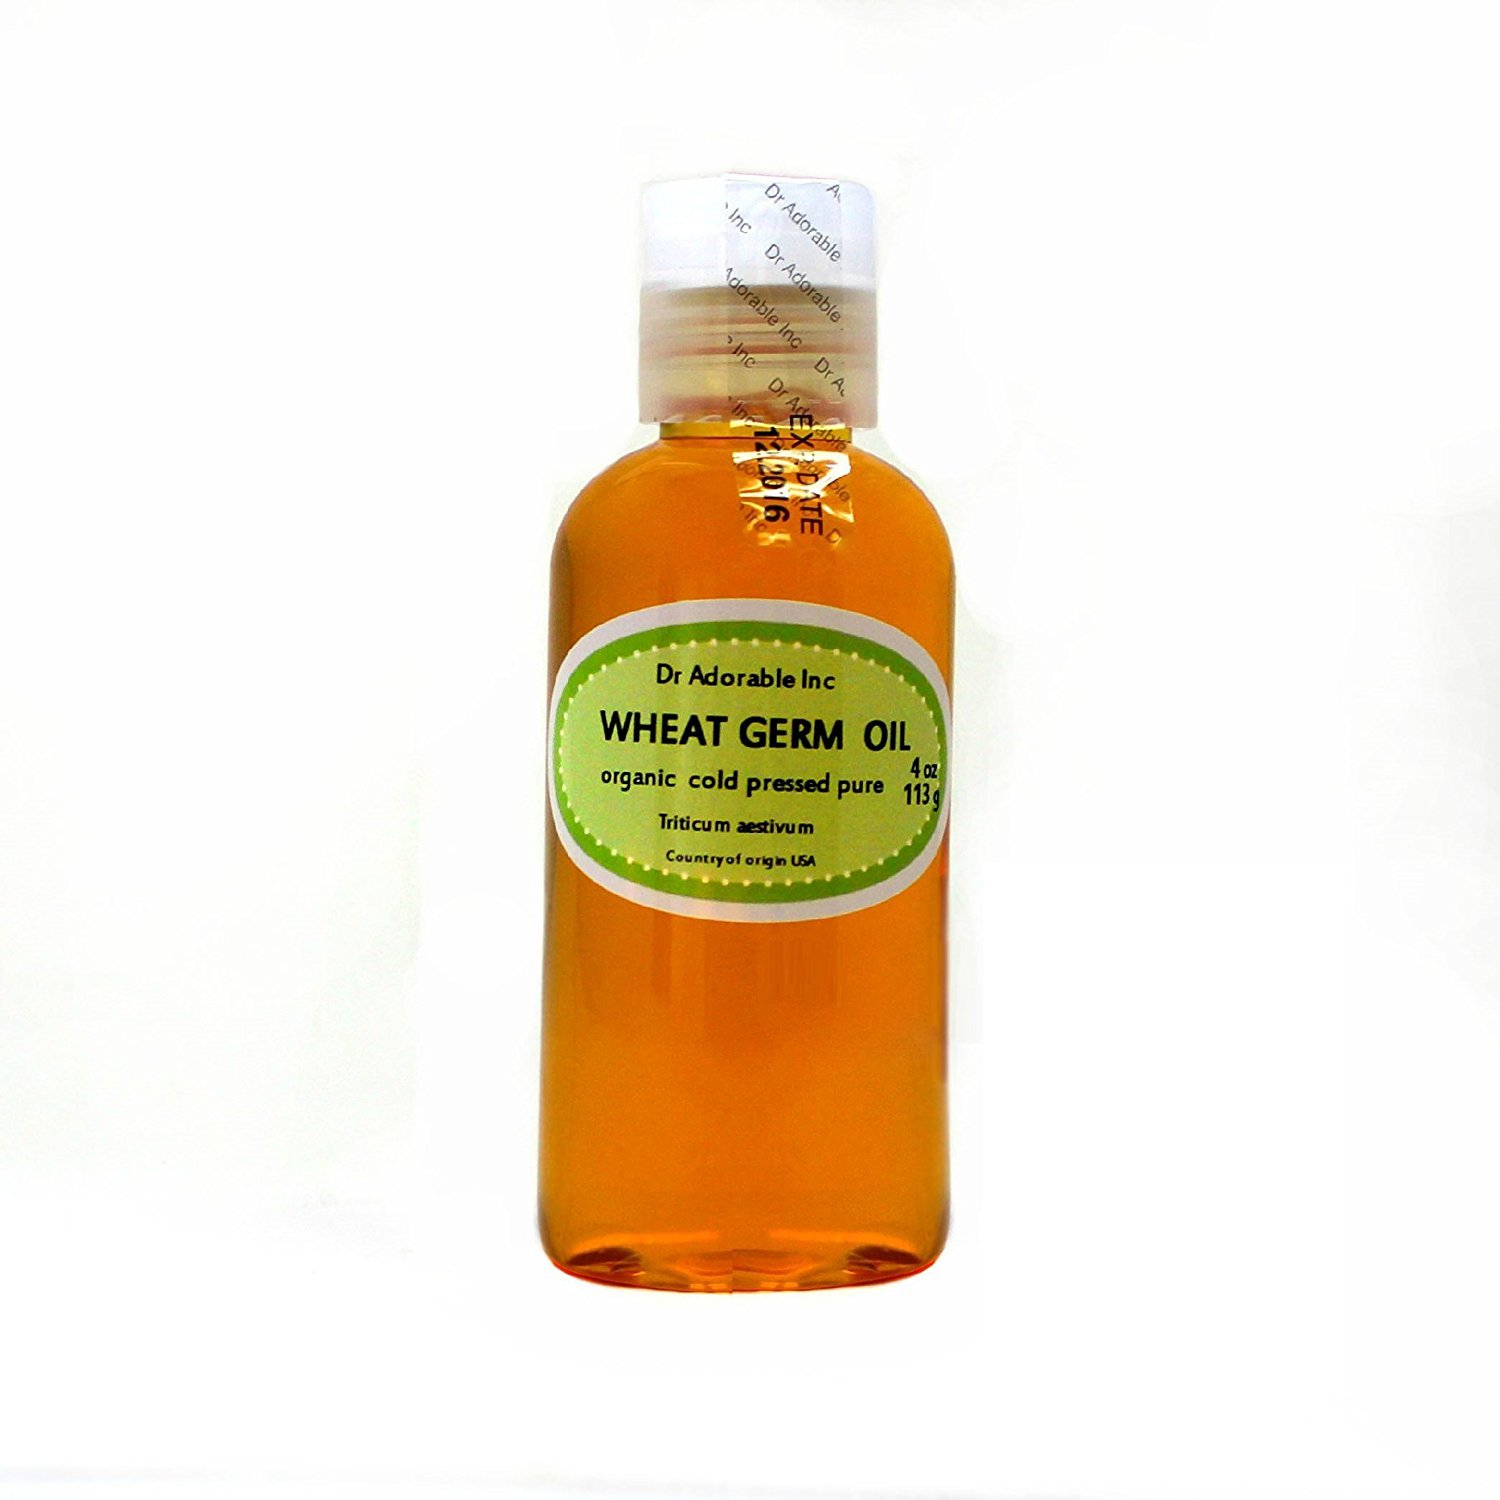 Wheat Germ Oil Unrefined Cold Pressed Organic Pure by Dr.Adorable 4 Oz